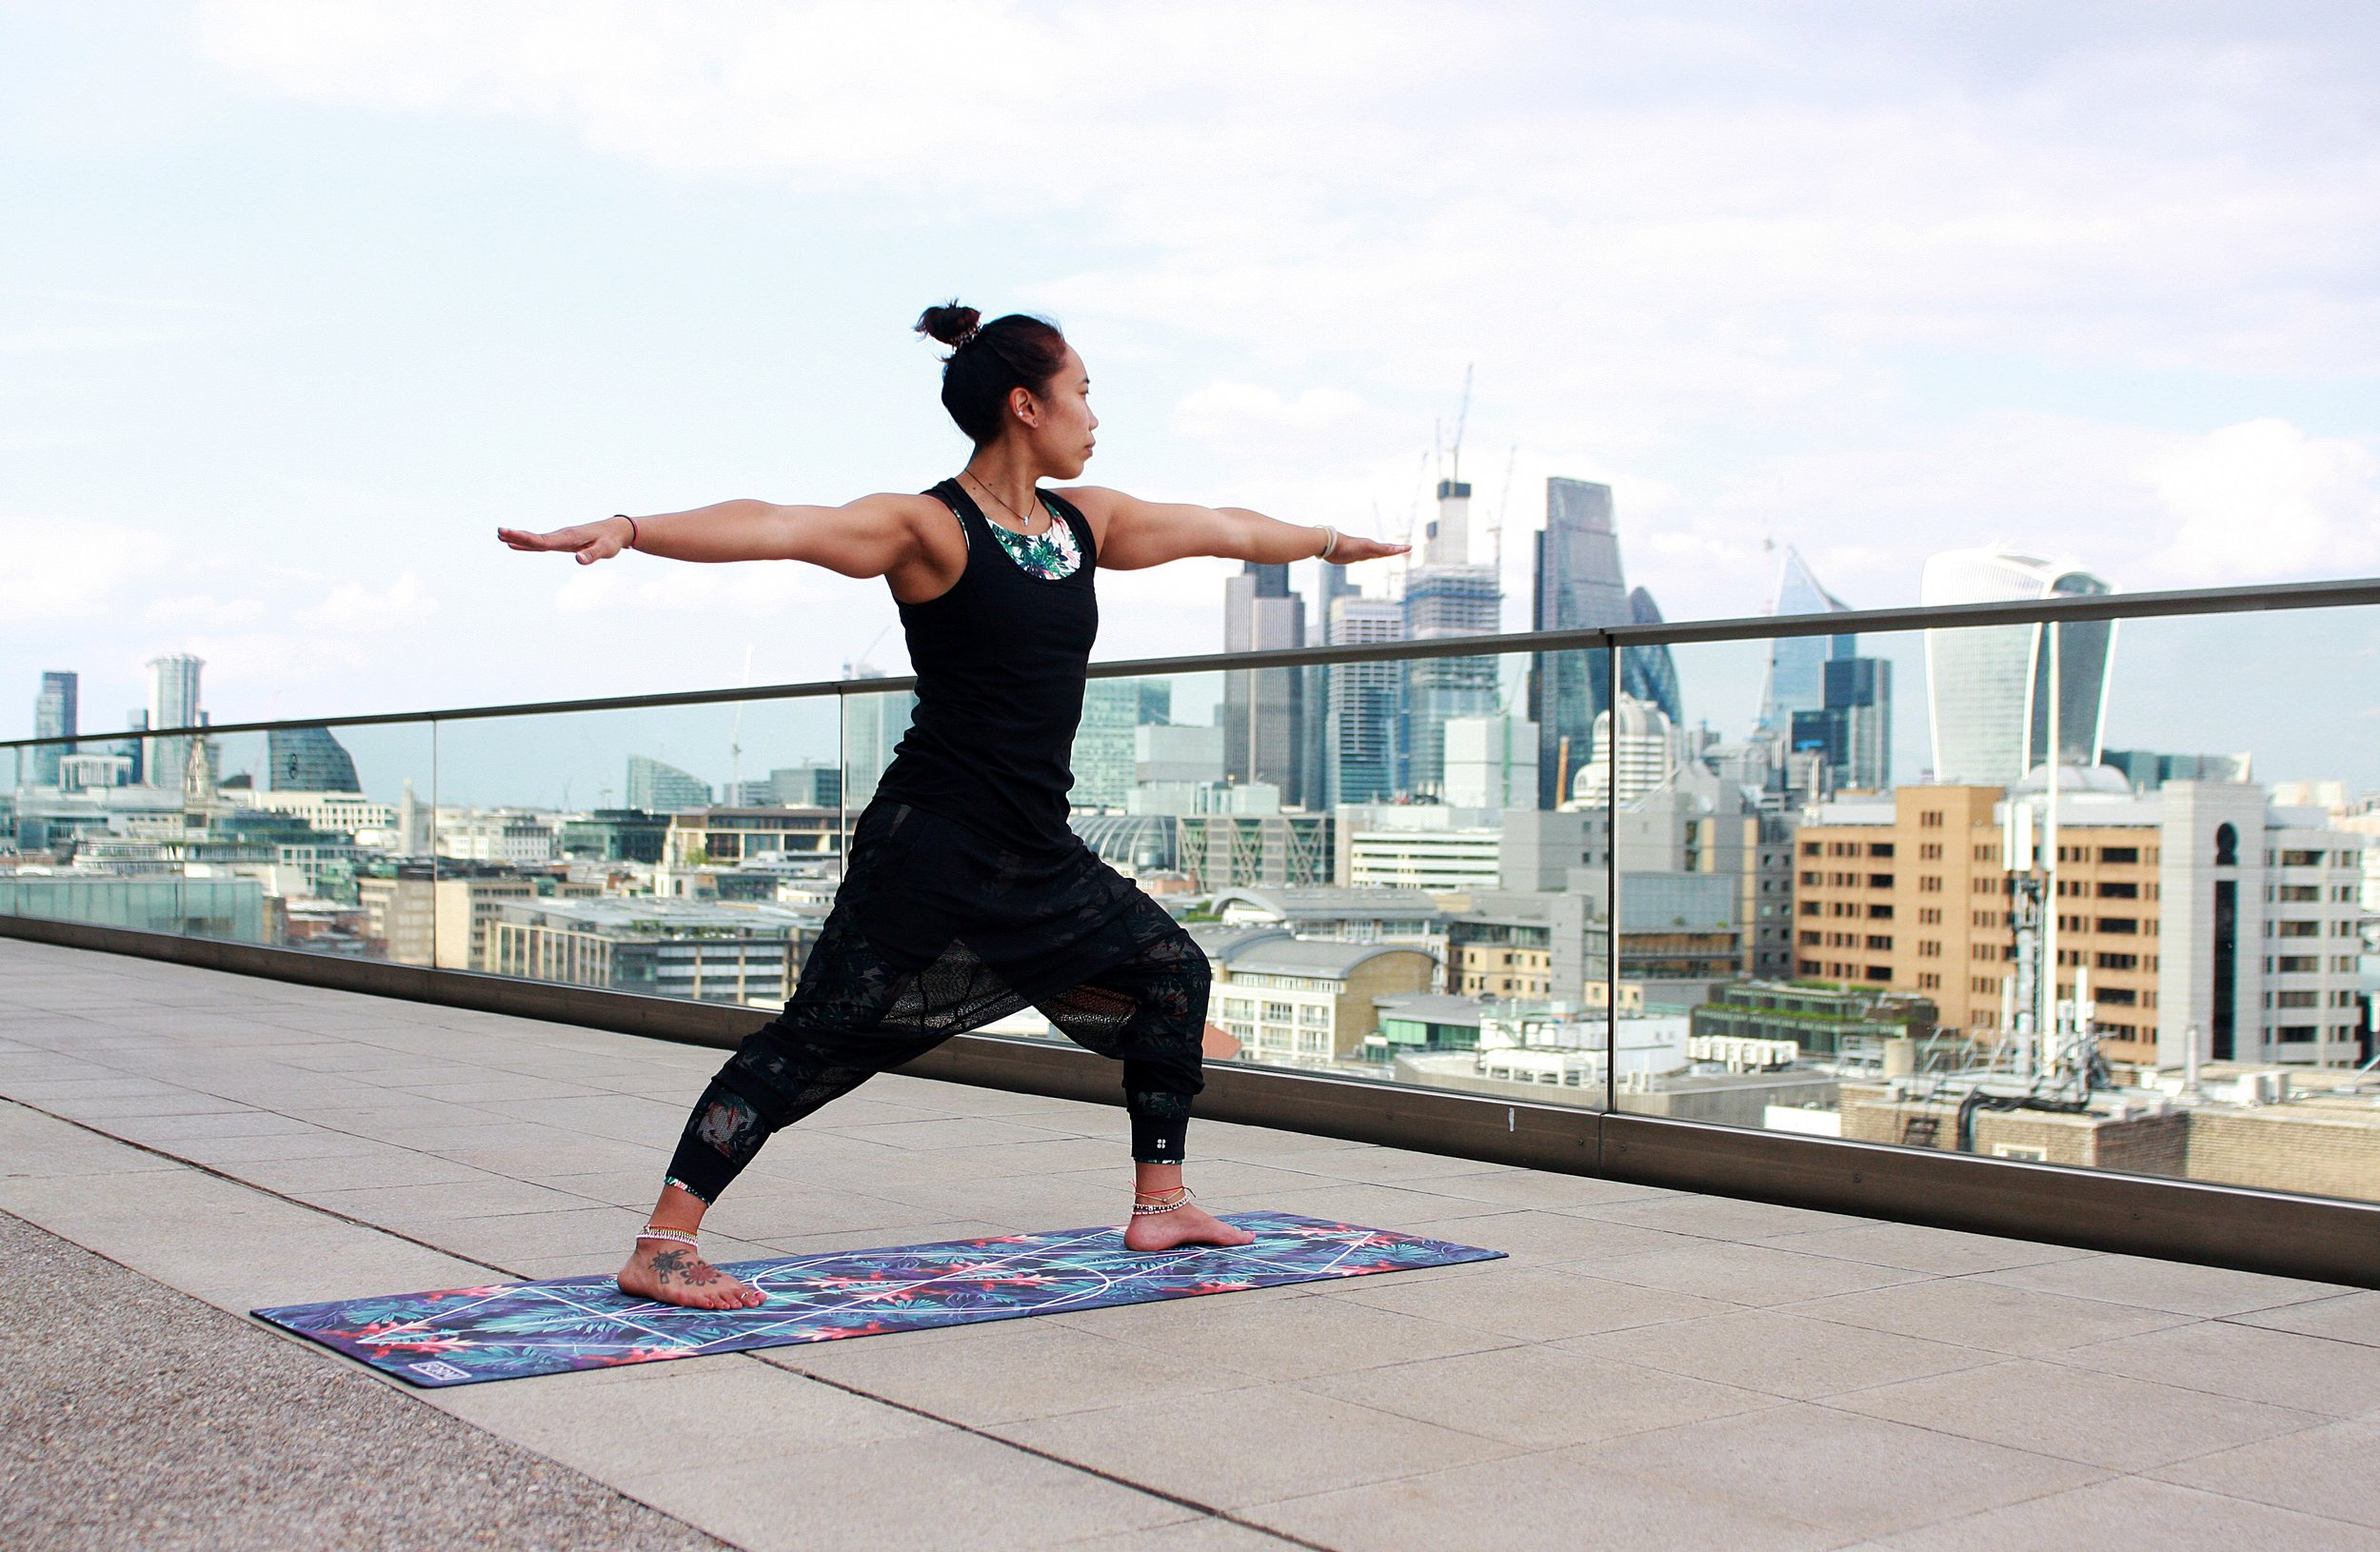 An office worker practising yoga on the roof of the workplace's building.